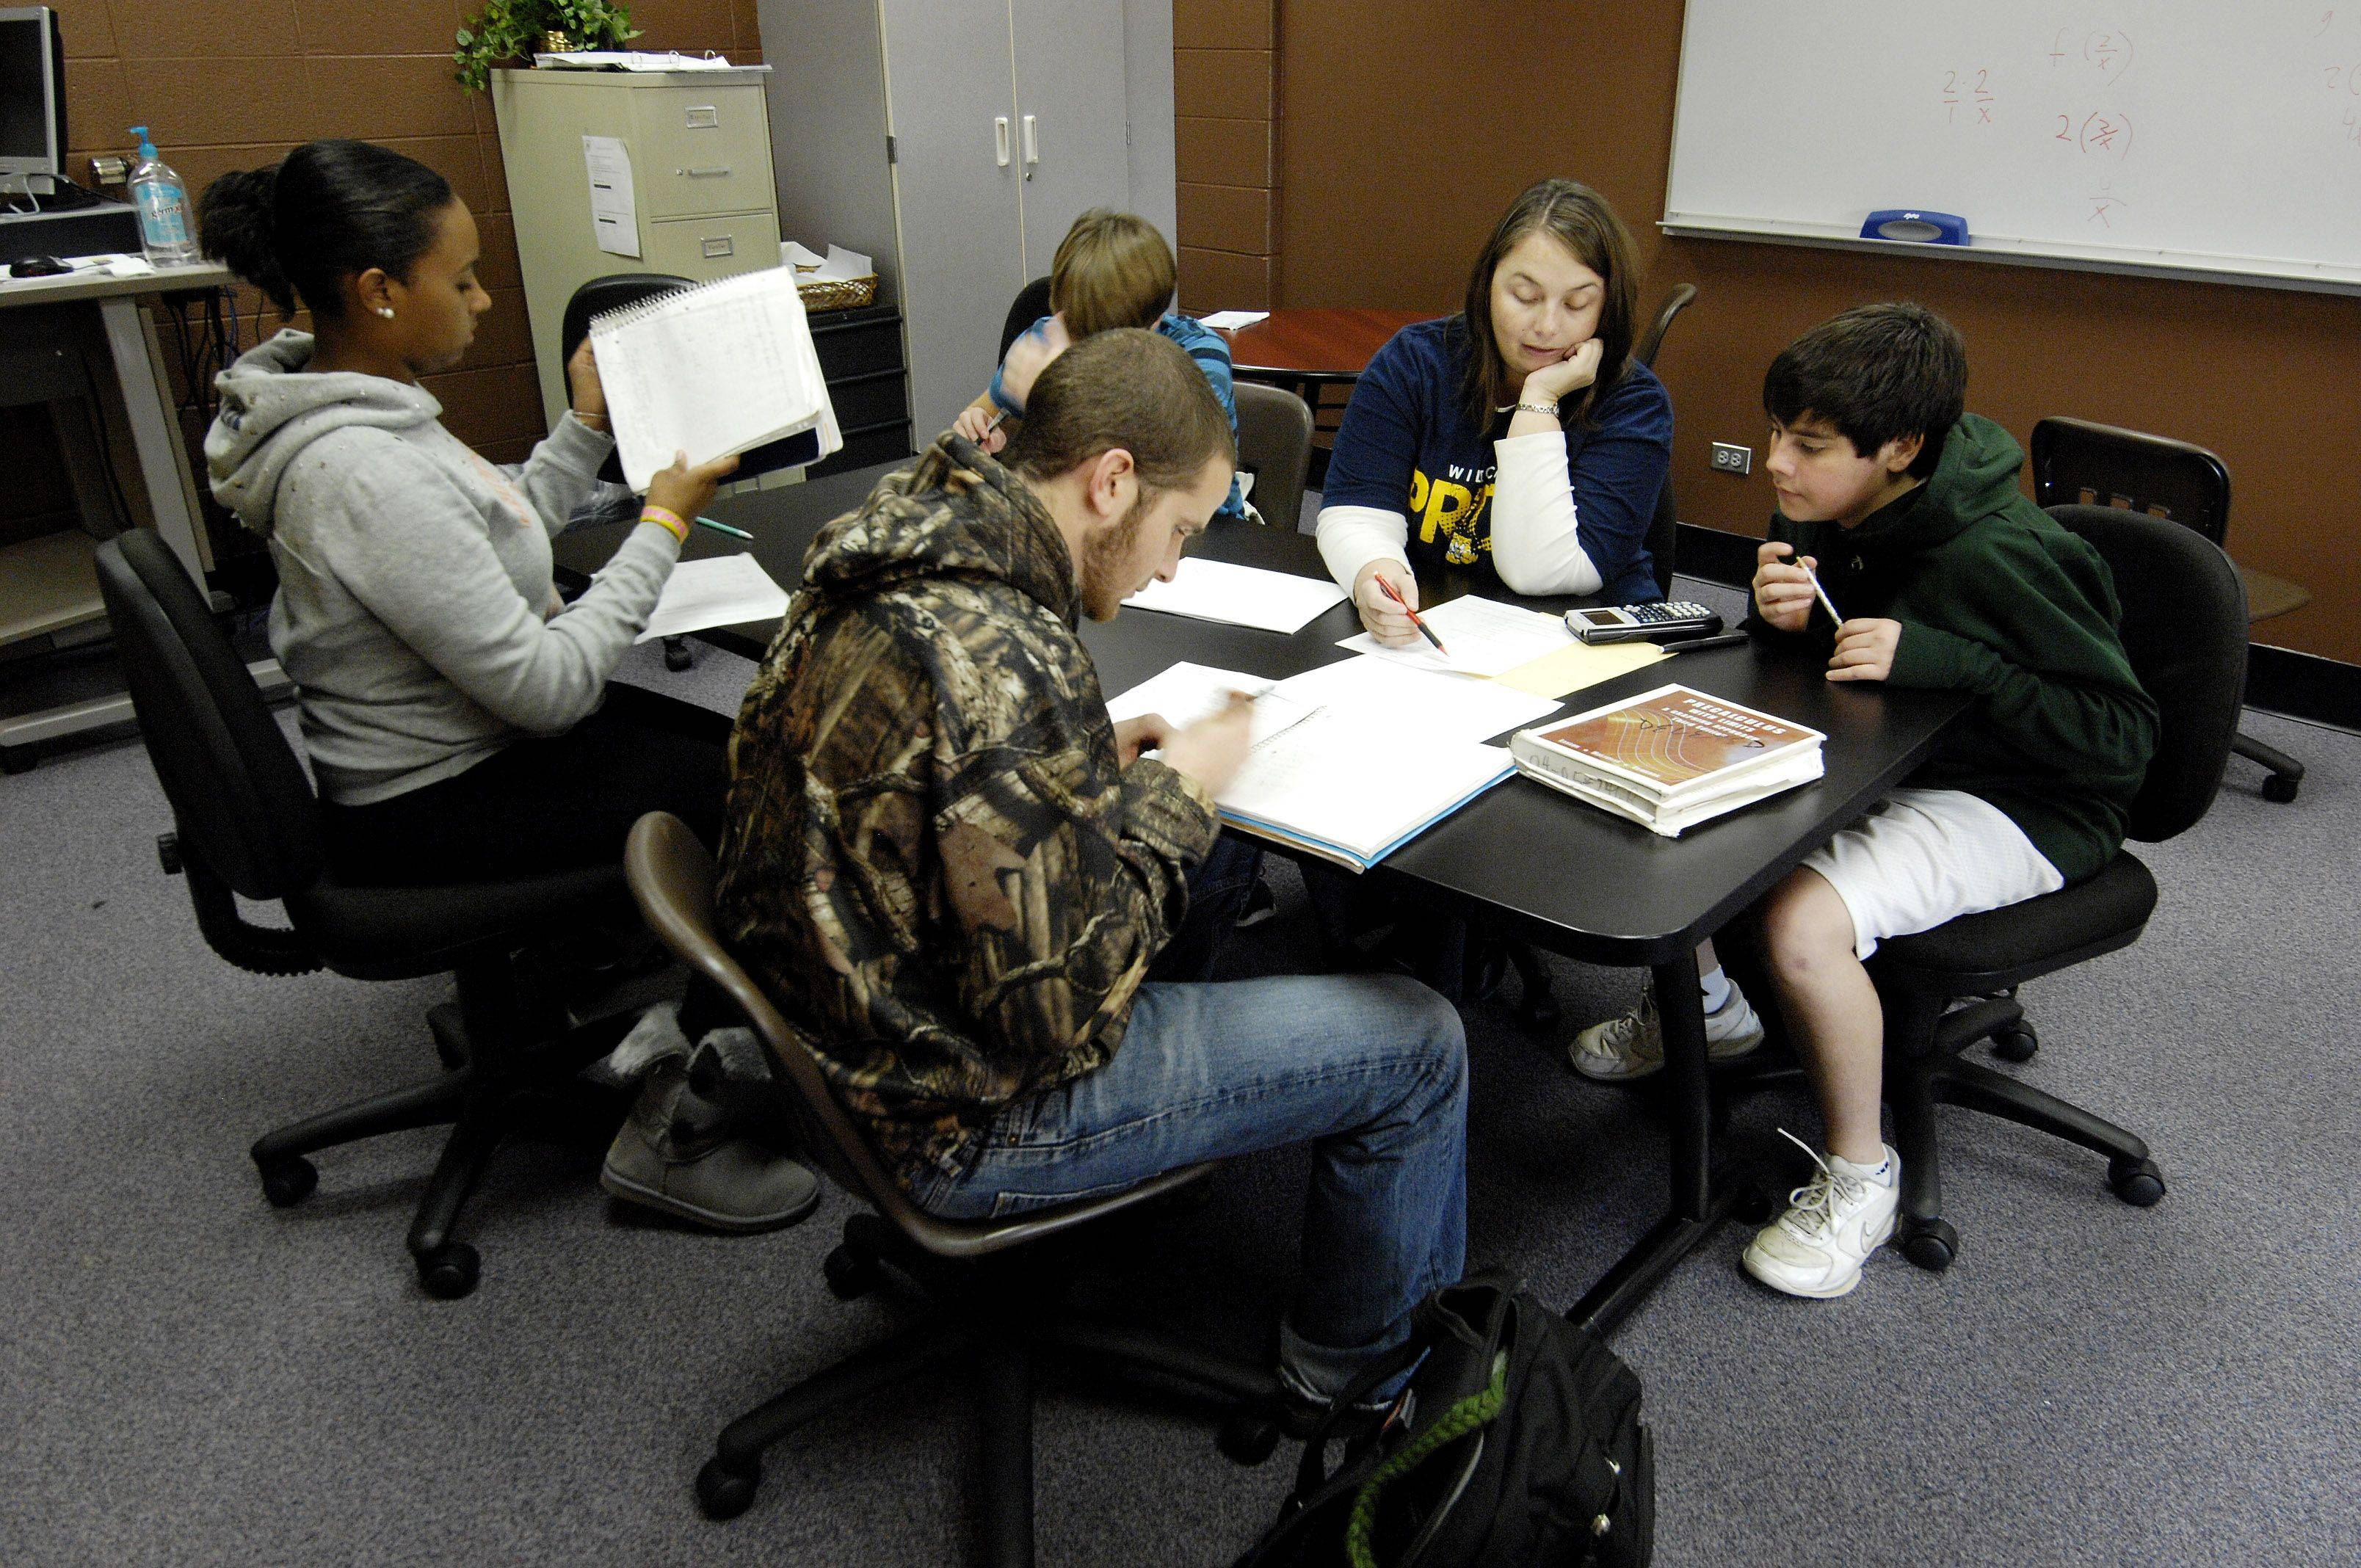 Neuqua Valley High School math teacher Sheila Roth works with students in the math resource room. Students have several choices when deciding what to do during their option periods.